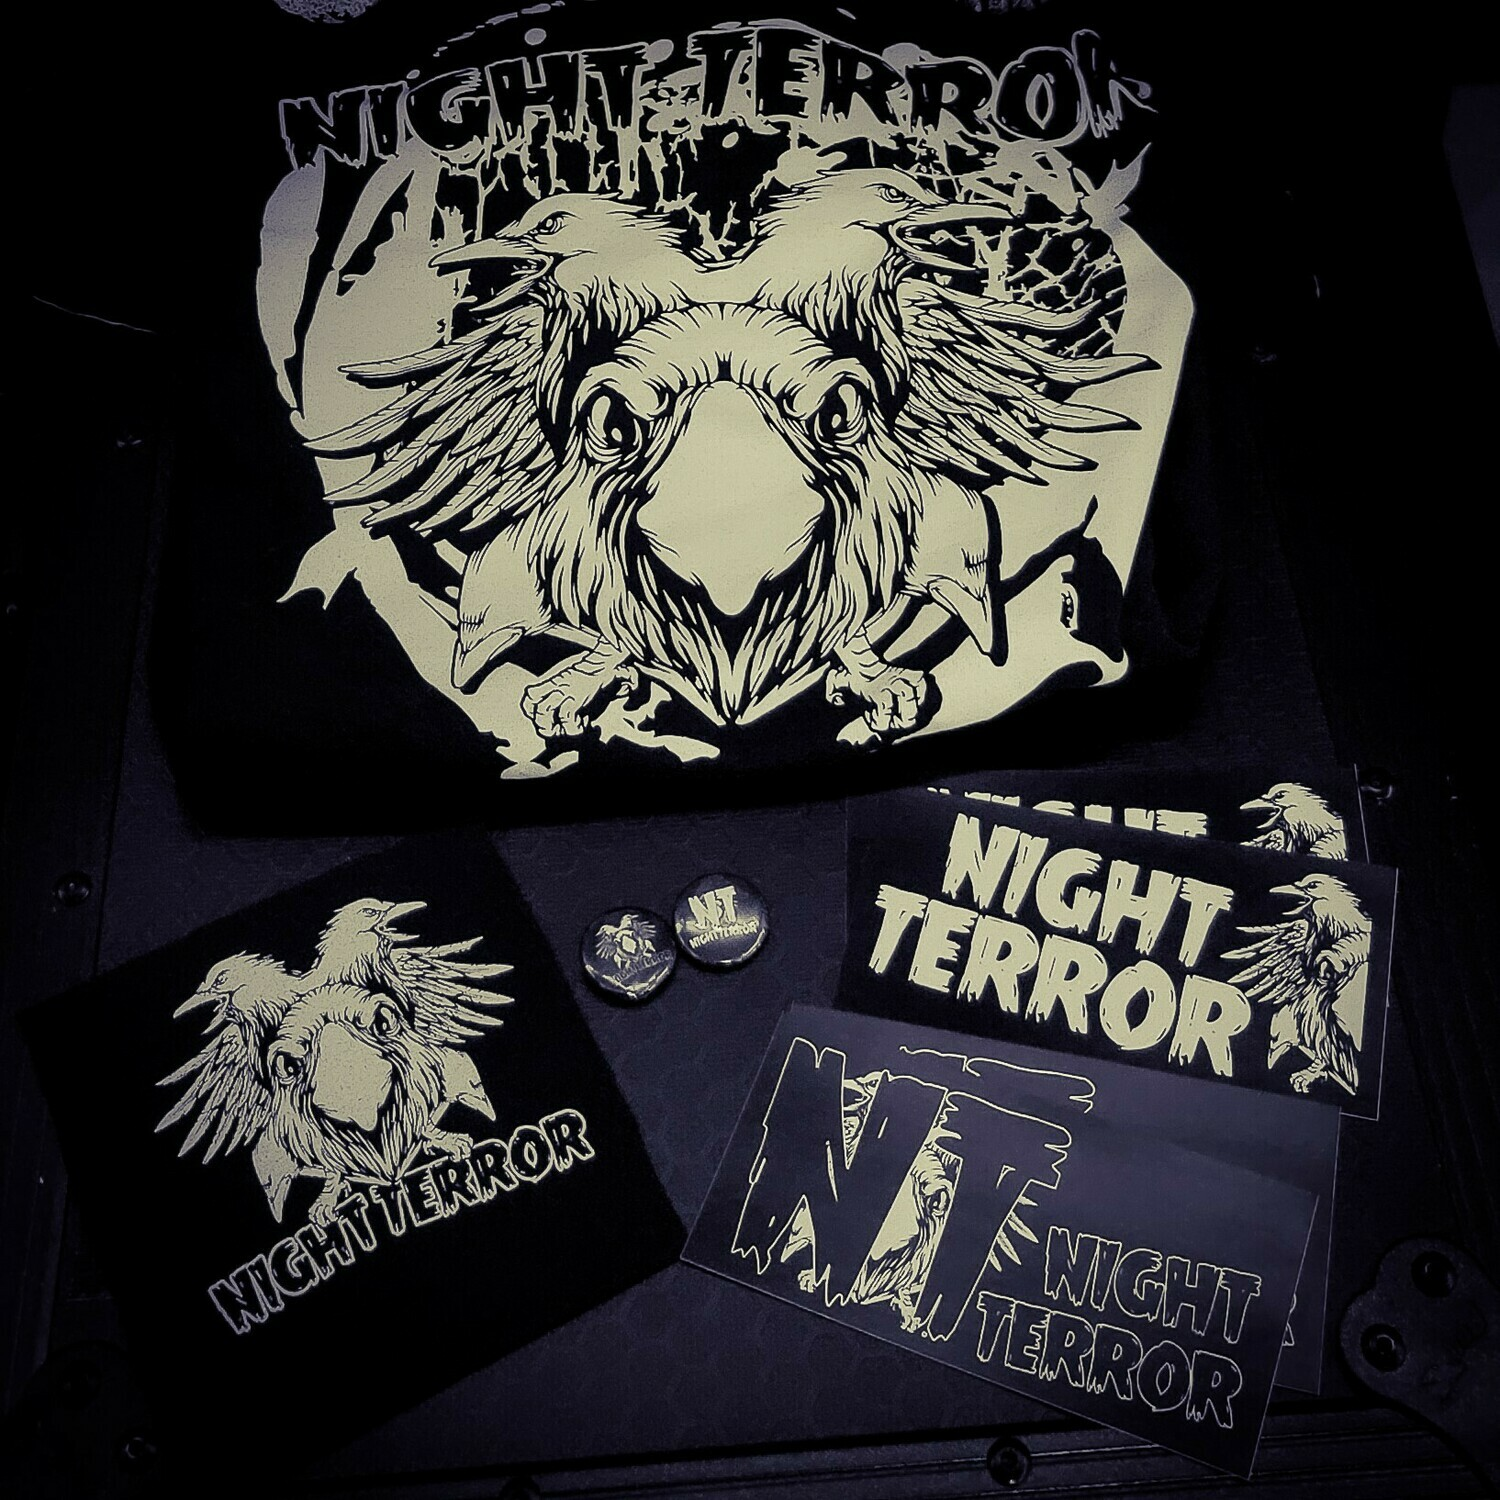 Terror Pack - Shirt, stickers, buttons, patch